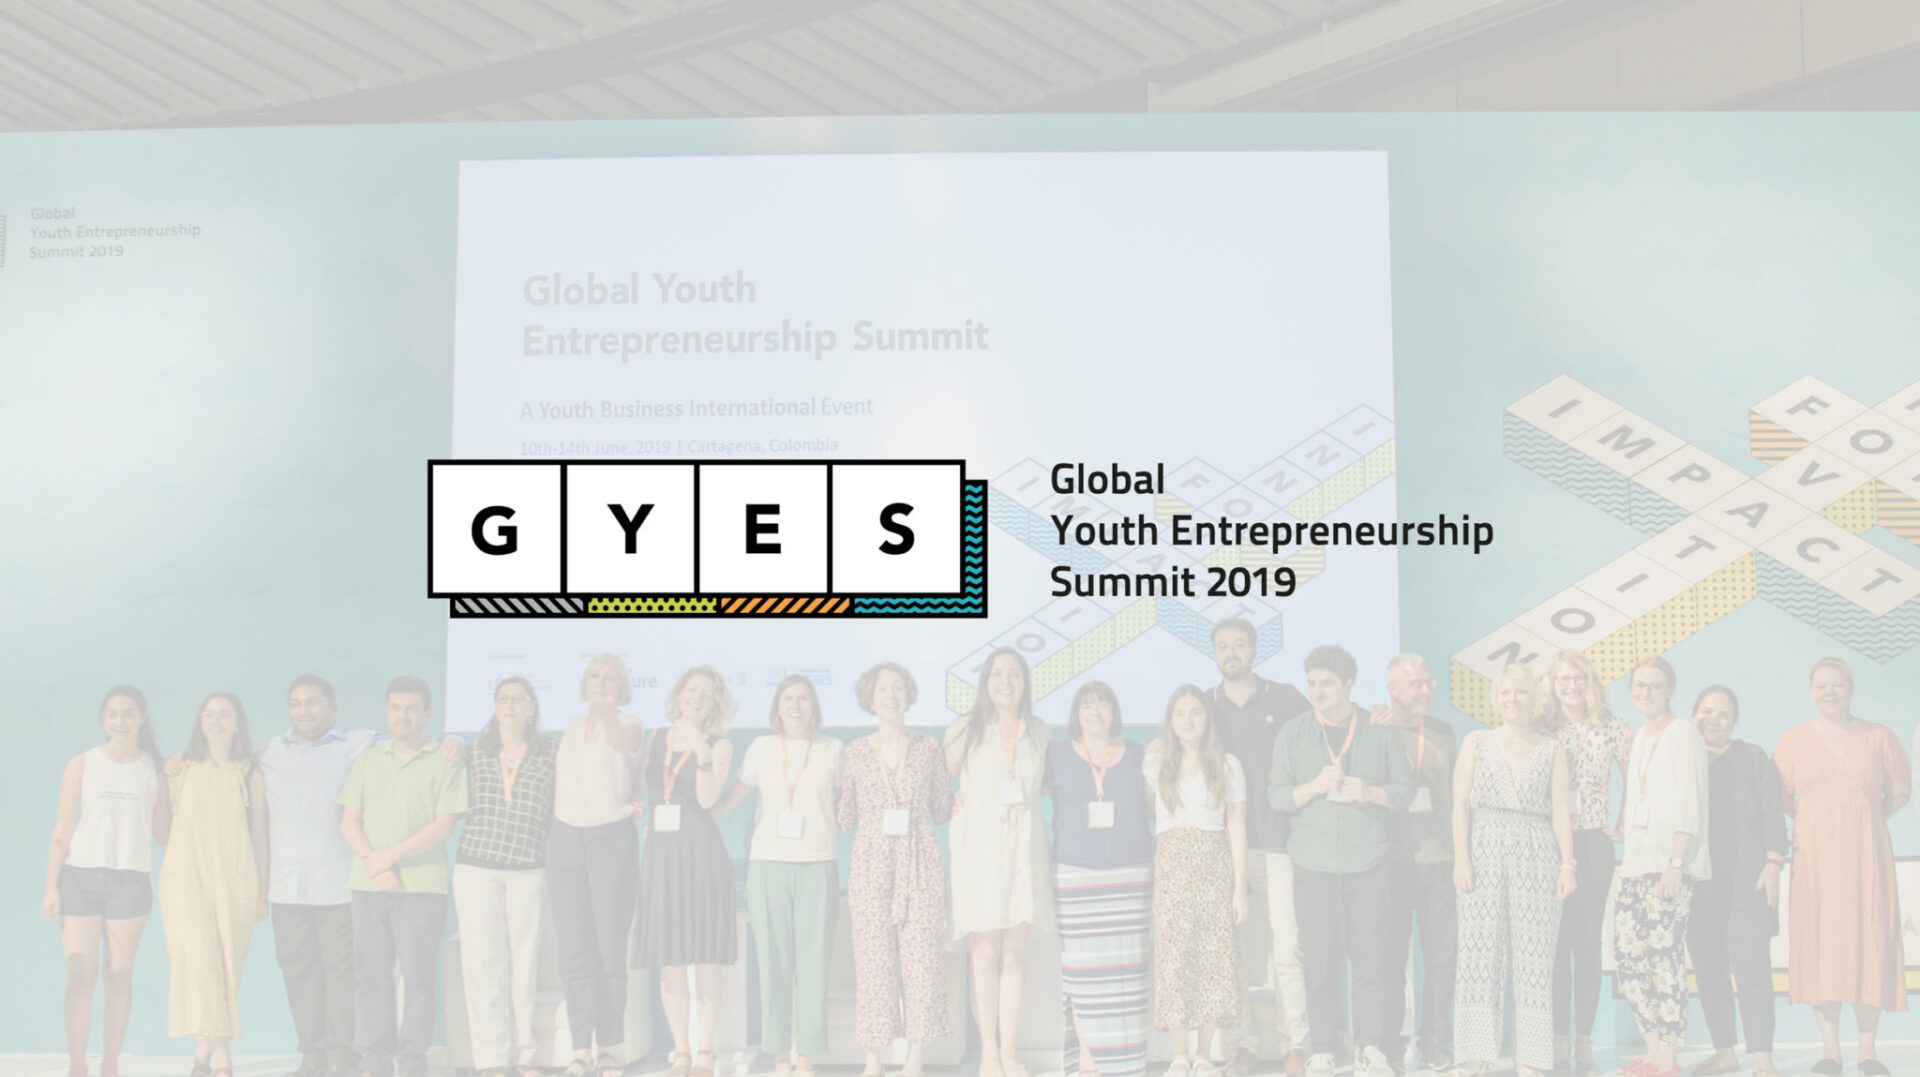 GYES Logo on background image of the event